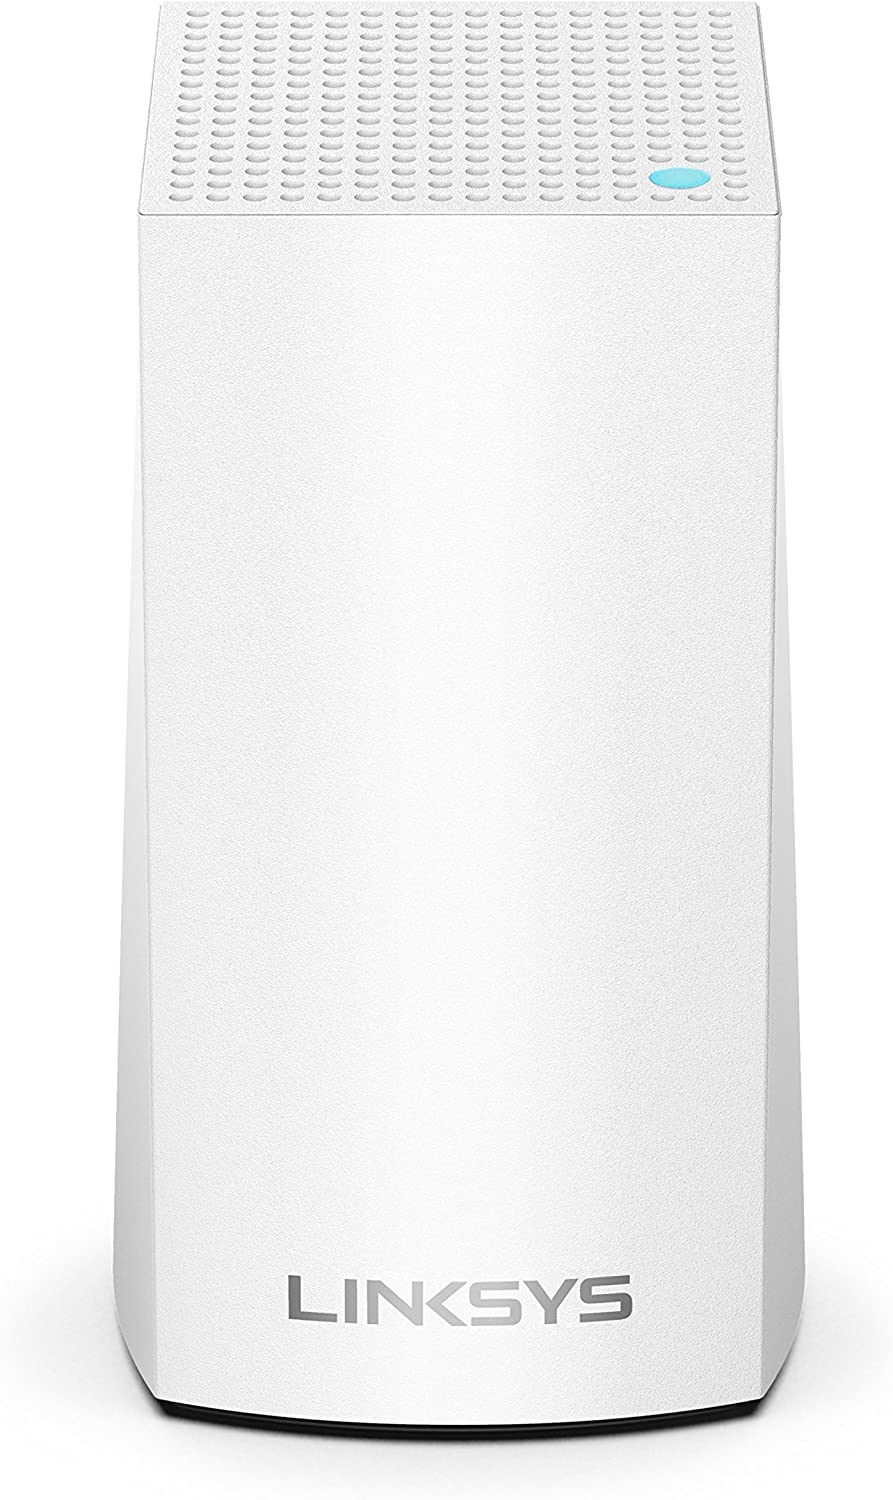 Linksys Velop Whole Home WiFi White Dual-Band Series, 1500 Sq Ft Coverage, 1 Pack Expandable! (AC1200)